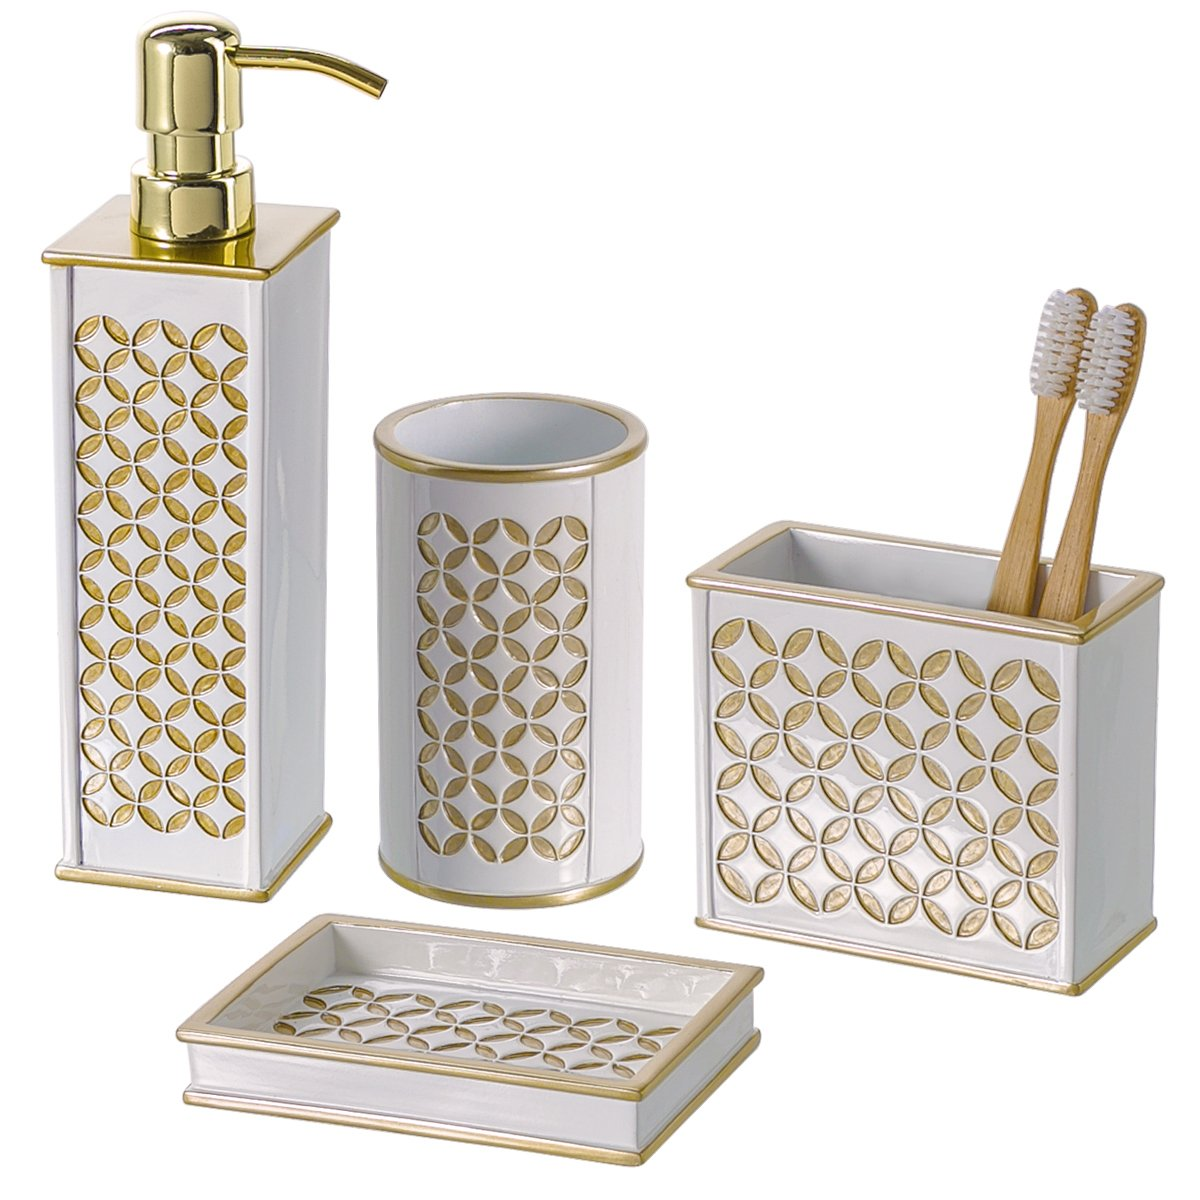 4 piece bathroom accessories set dispenser toothbrush holder tumbler new ebay - Bathroom soap dish sets ...